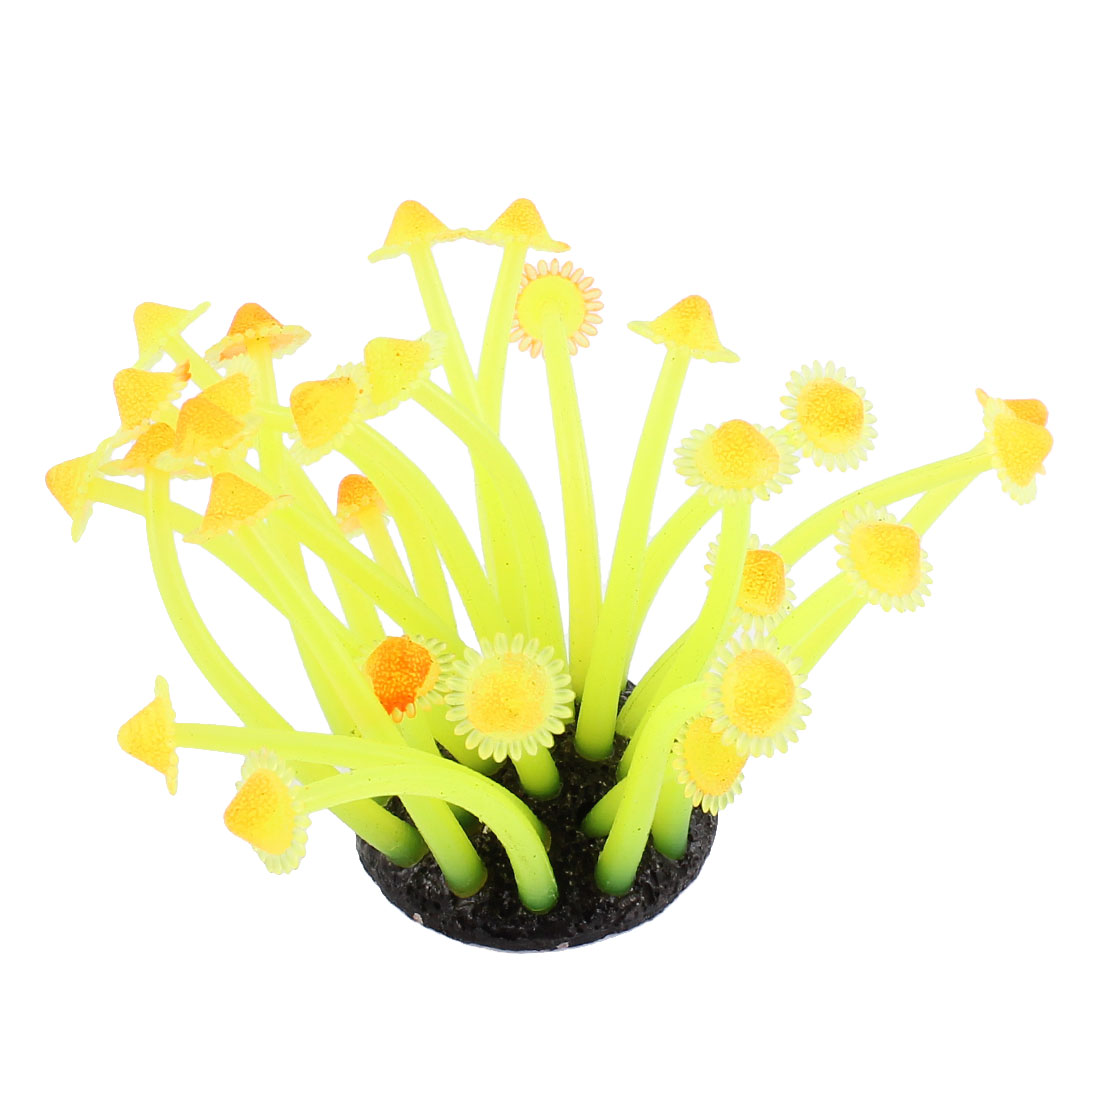 Aquarium Fish Tank Soft Silicone Emulation Anemone Coral Ornament Yellow Orange